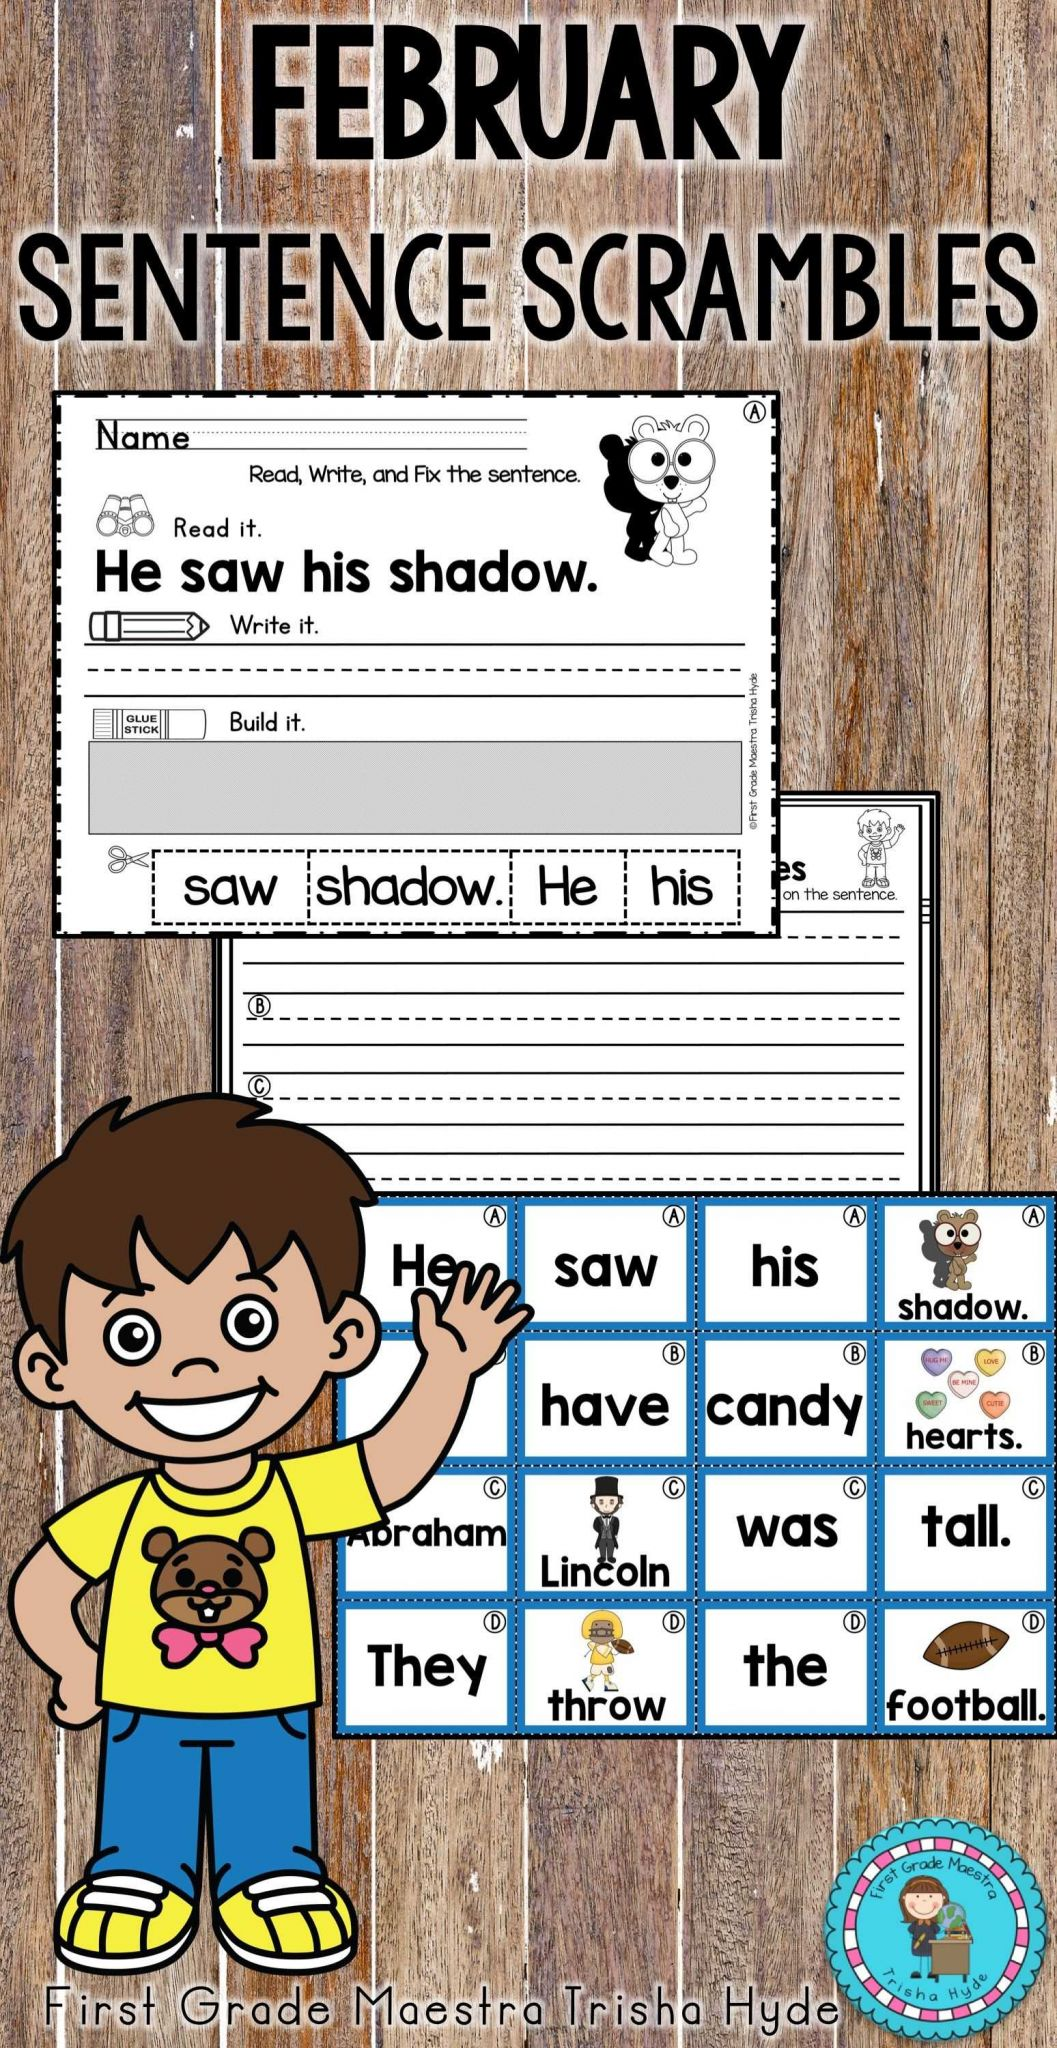 Free Sentence Scramble Worksheets Along with February Sentence Scrambles